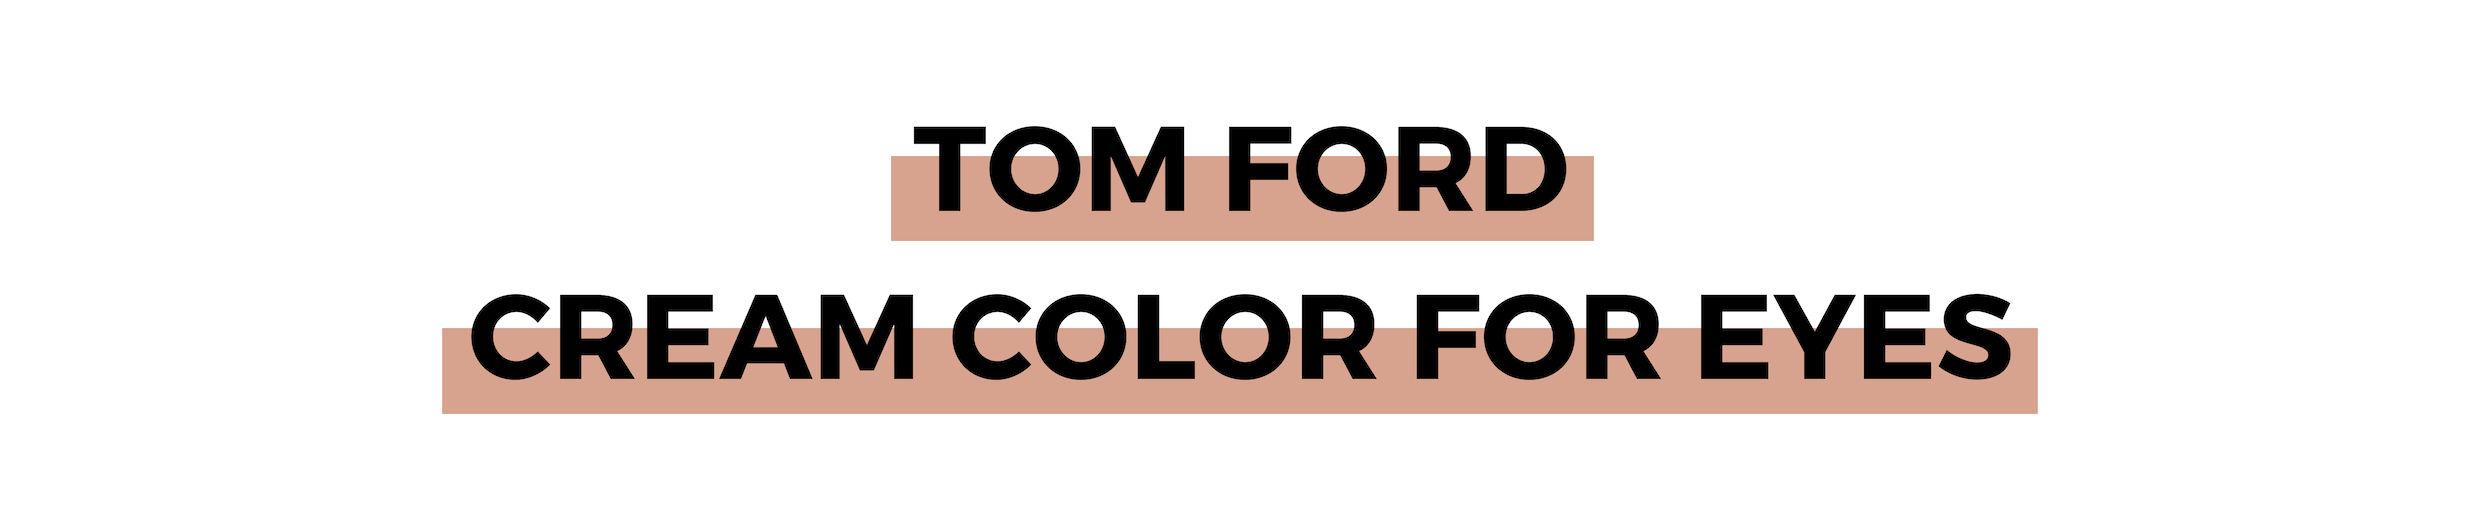 TOM FORD CREAM COLOR FOR EYES.png